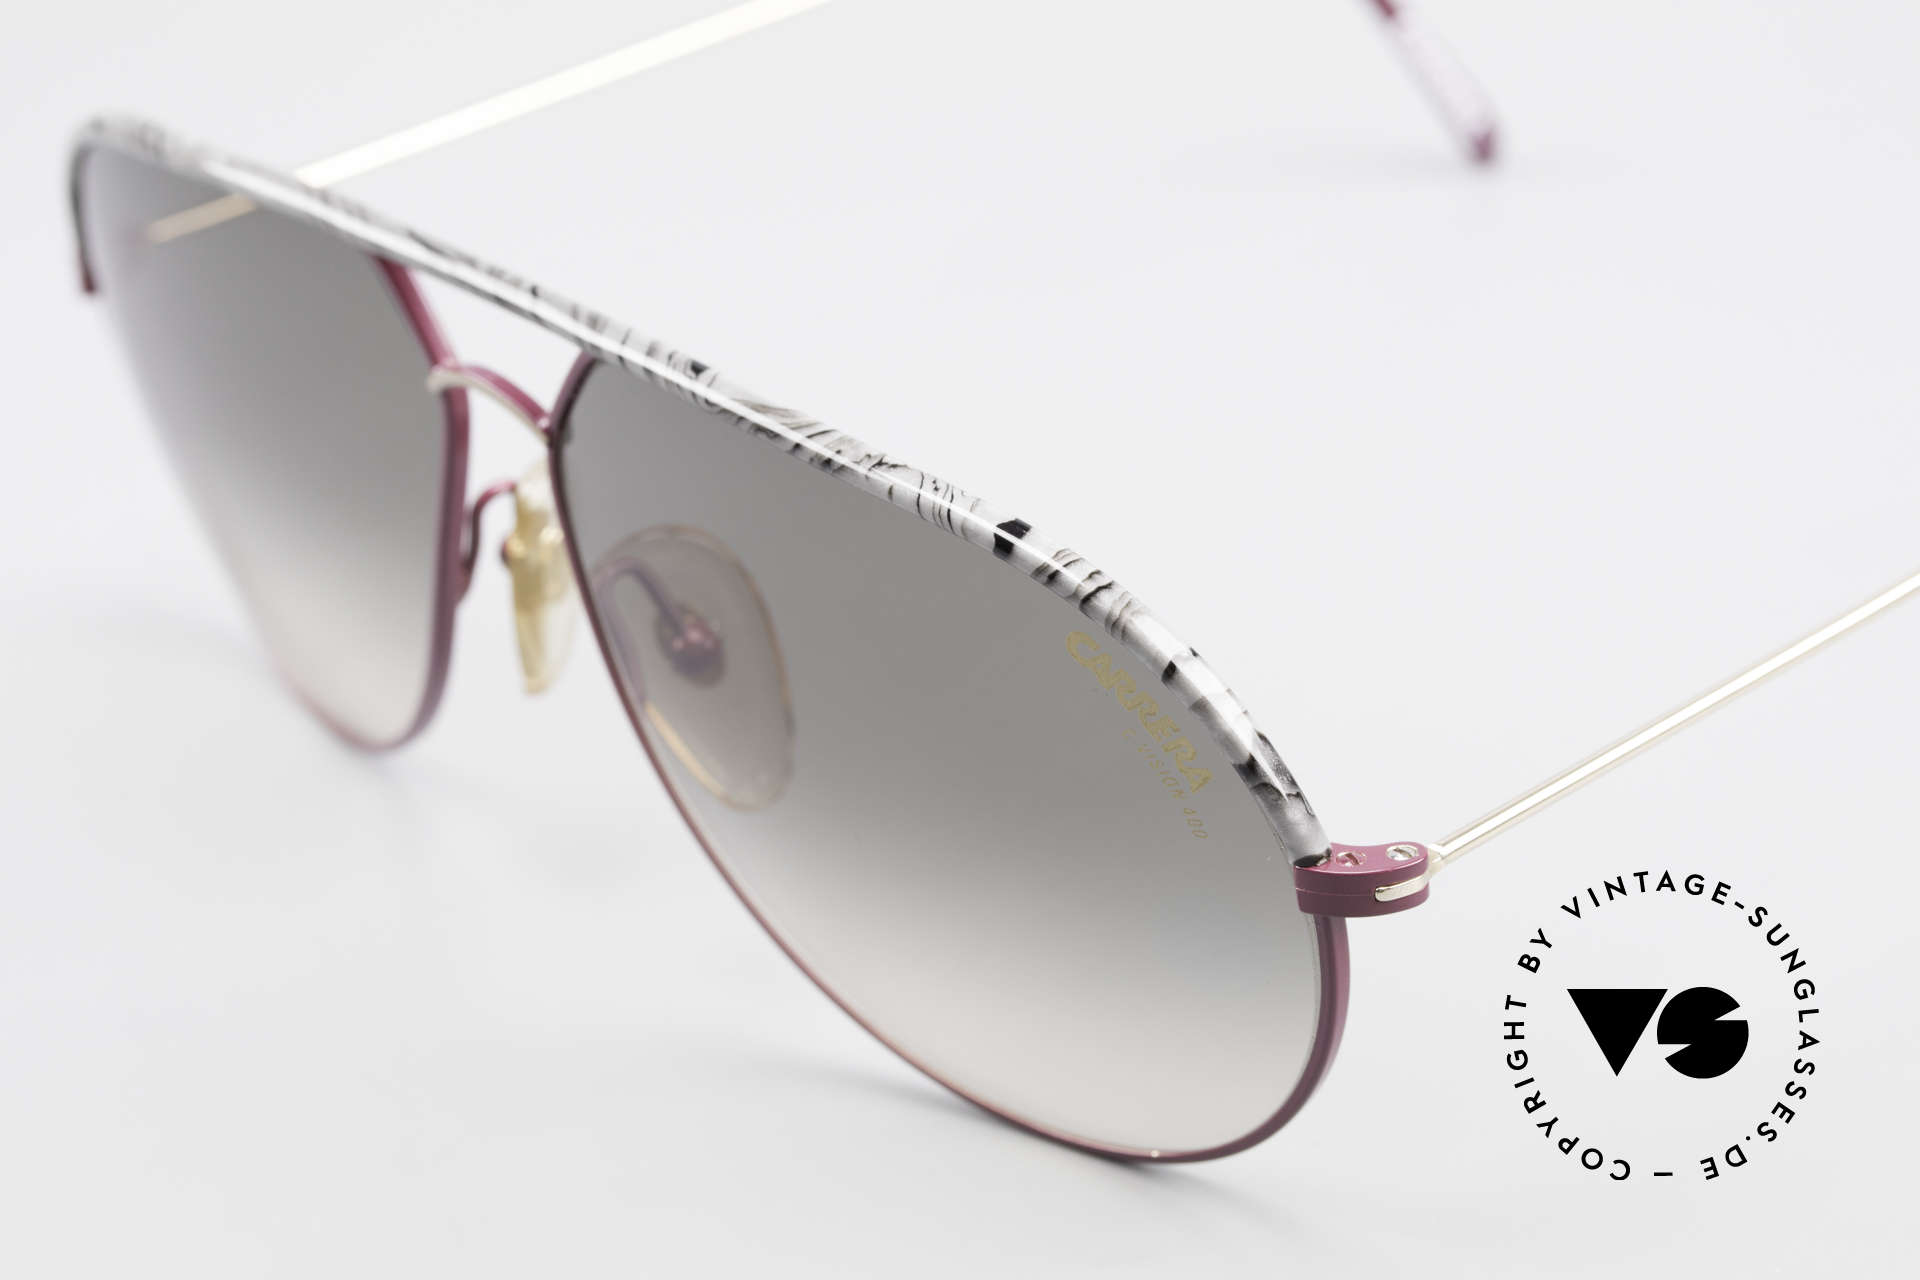 Carrera 5428 Rare Old Vintage 80's Shades, green/gray-gradient Carrera lenses (C-VISION 400), Made for Men and Women